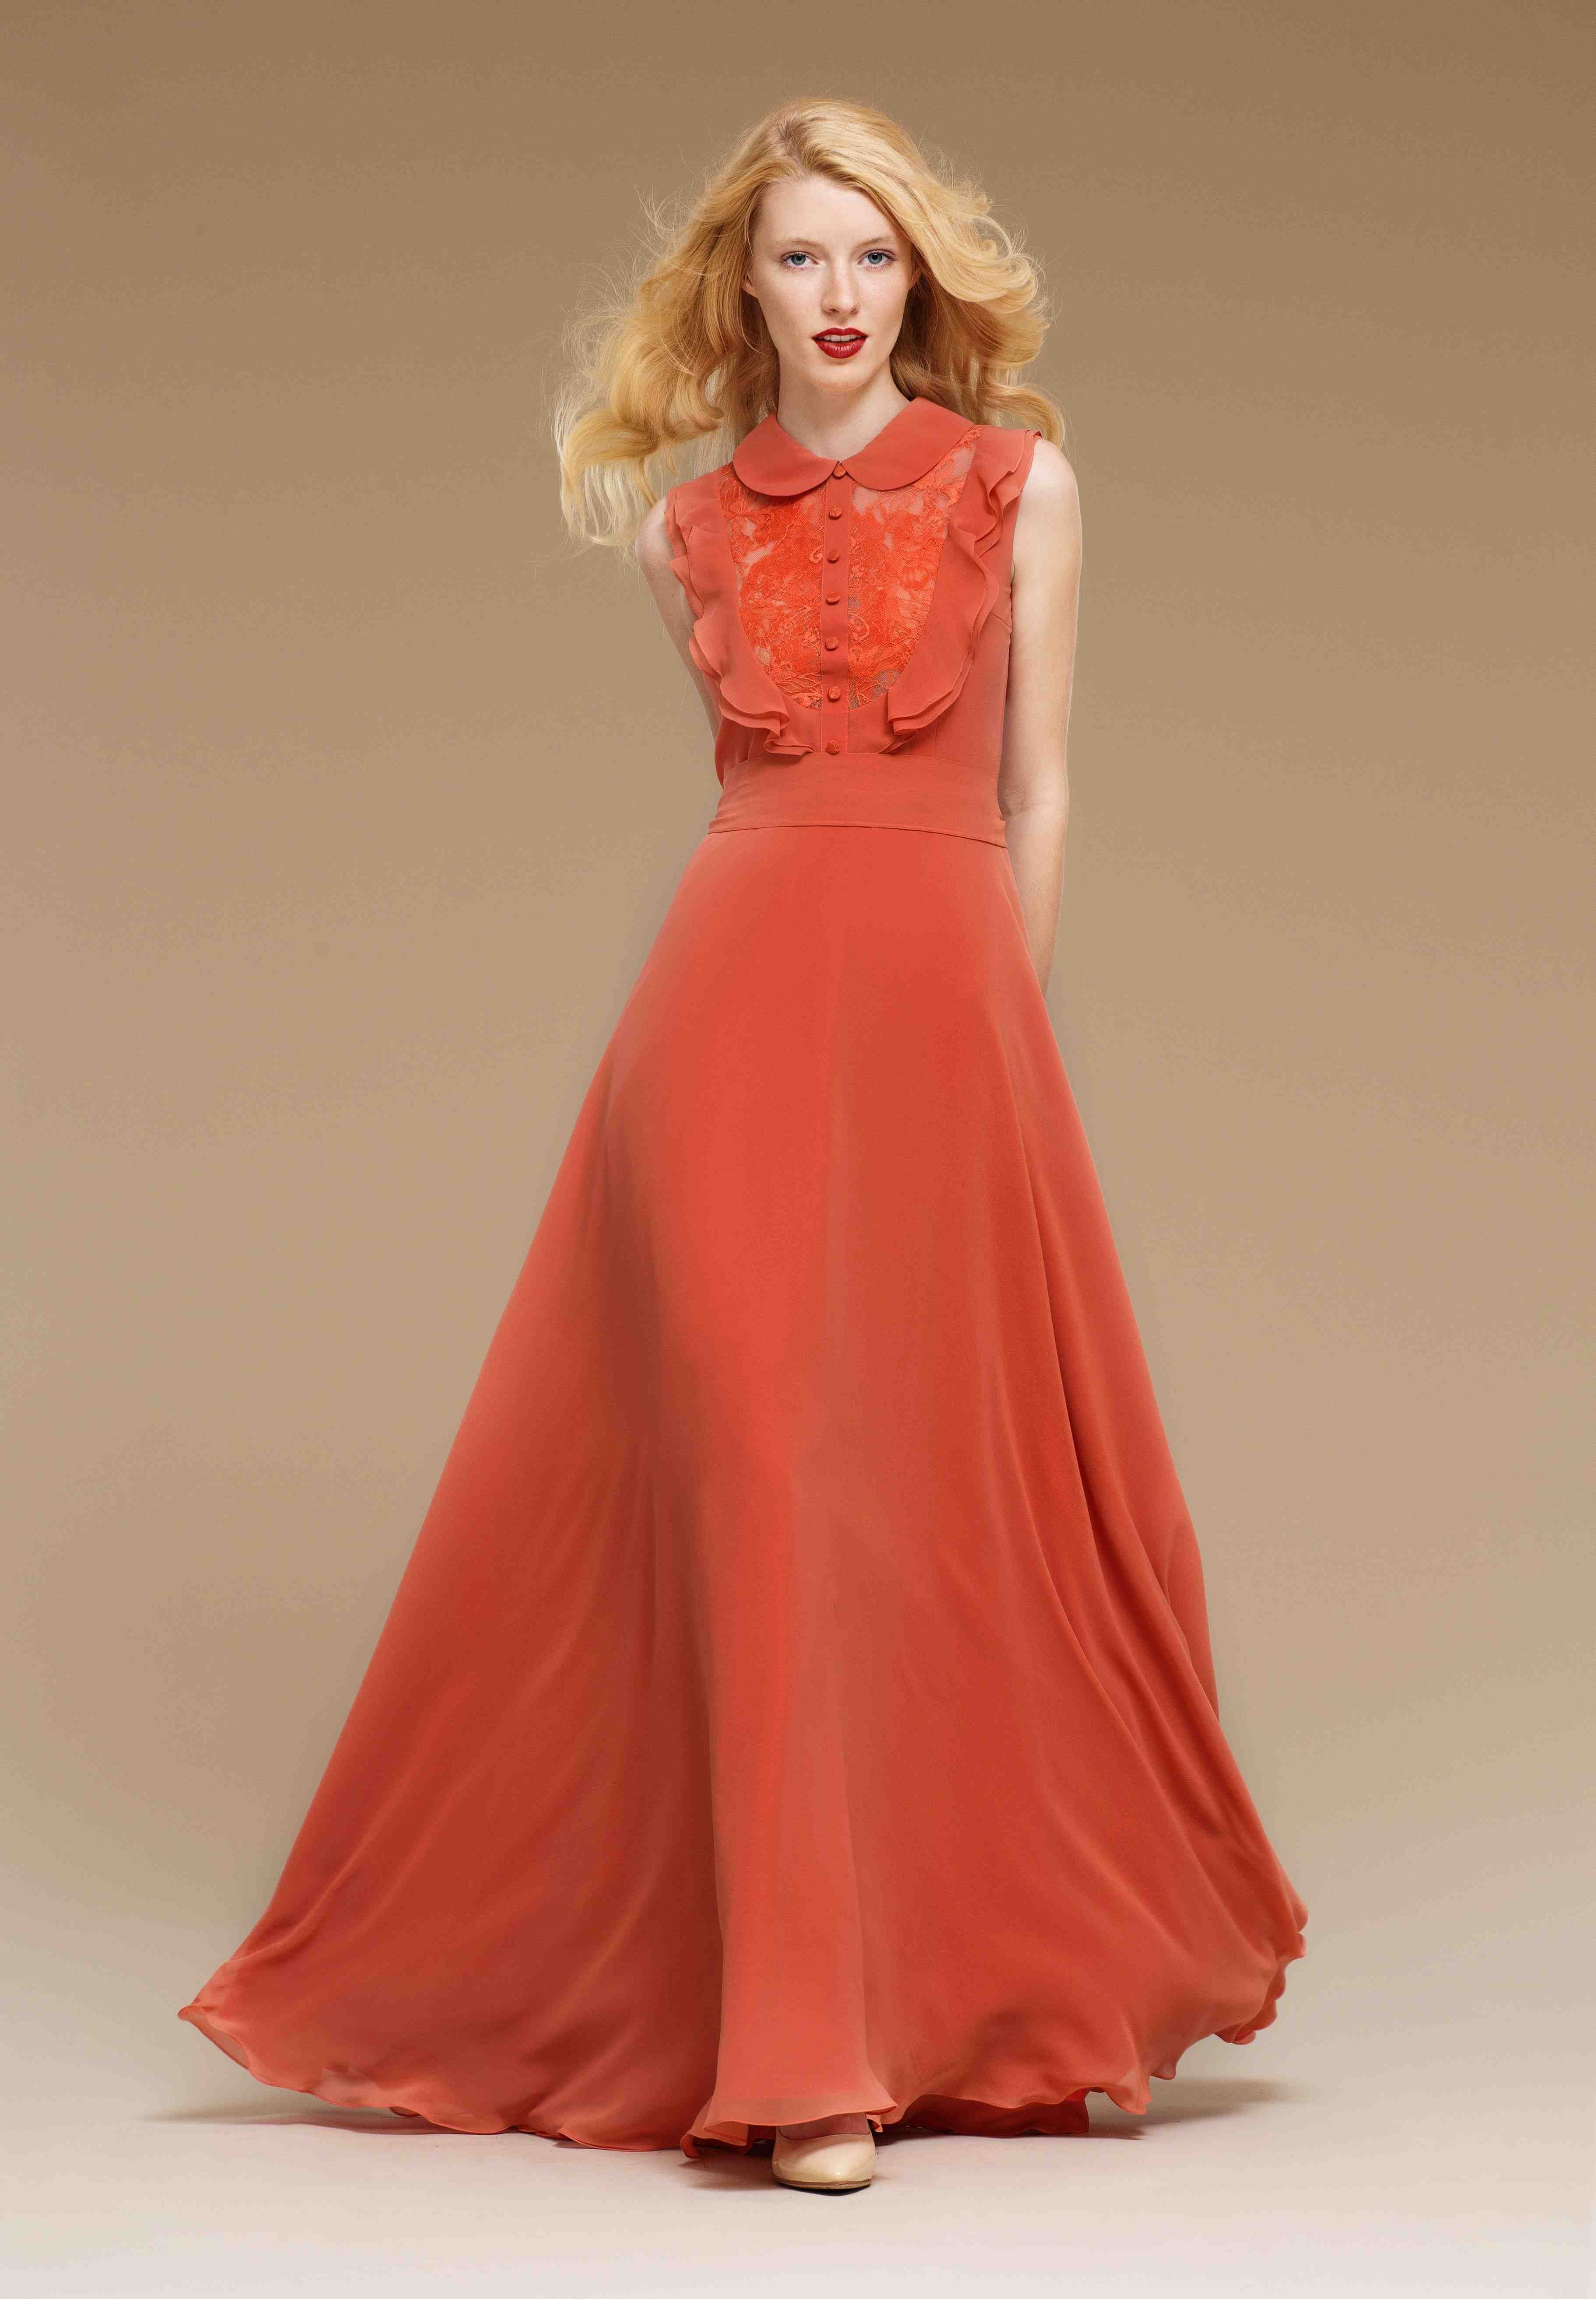 Papilio fashion line is an extensive assortment of beautiful evening